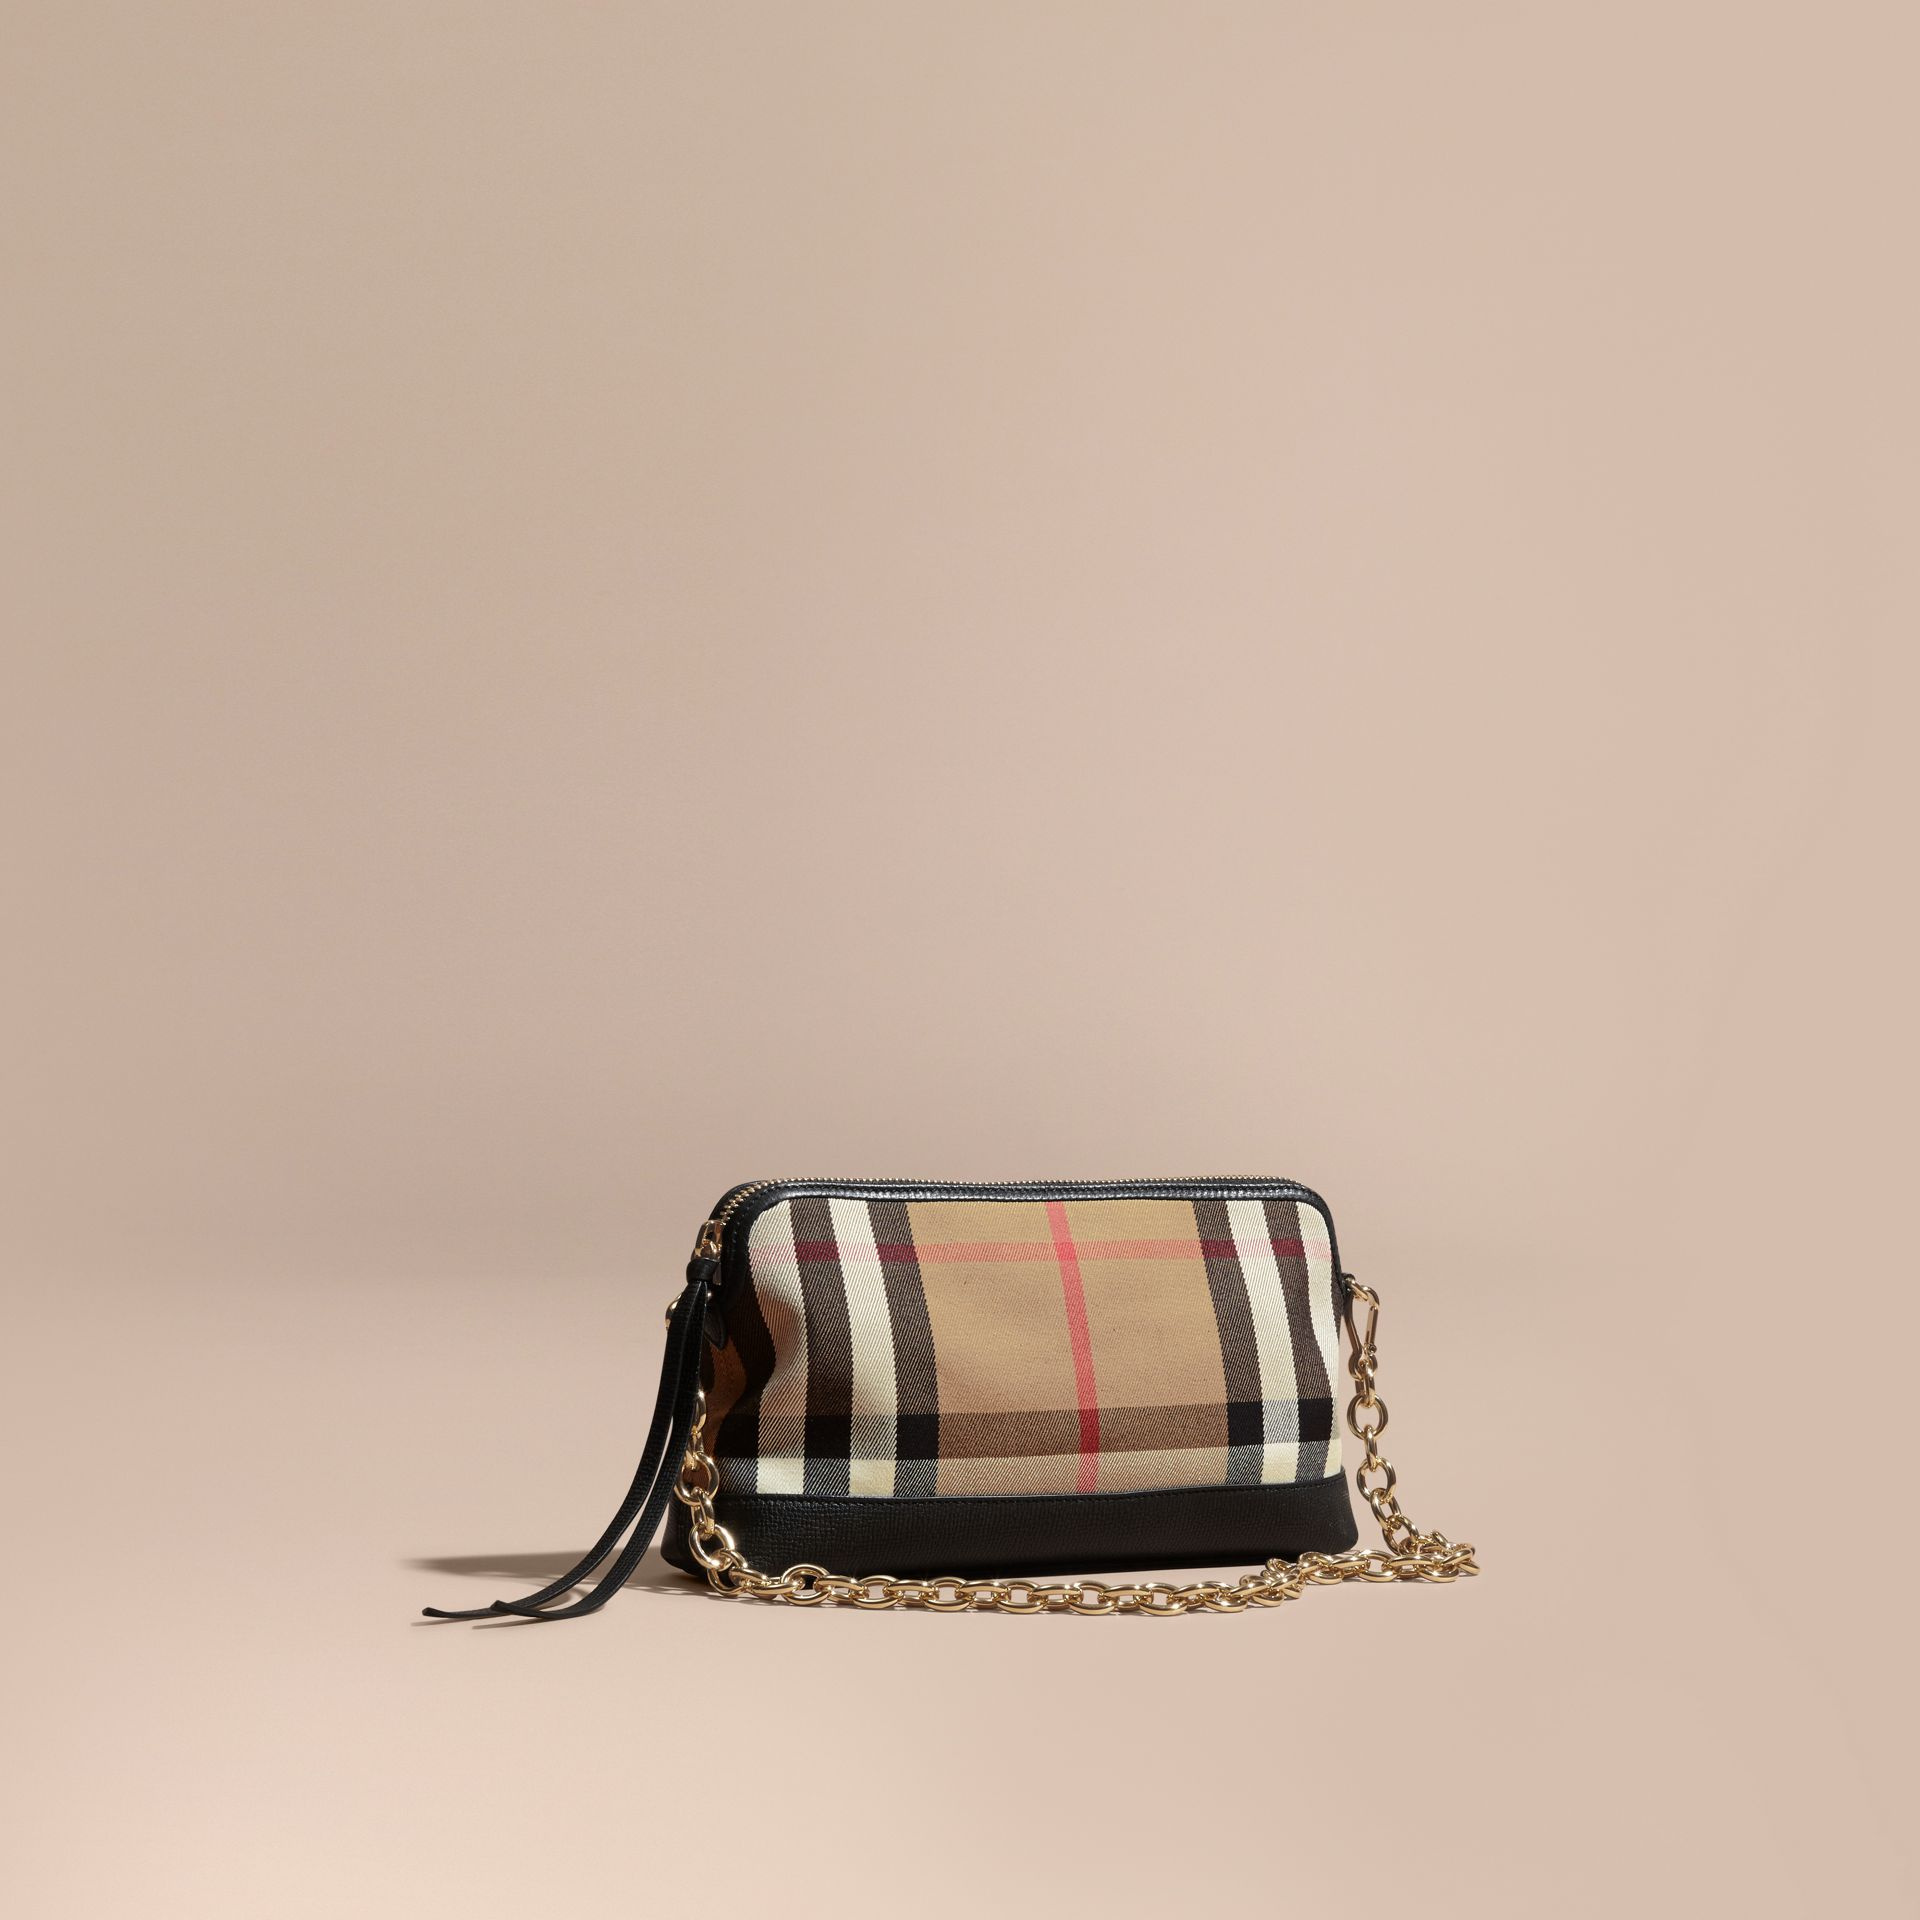 House Check and Leather Clutch Bag in Black - Women | Burberry Canada - gallery image 1